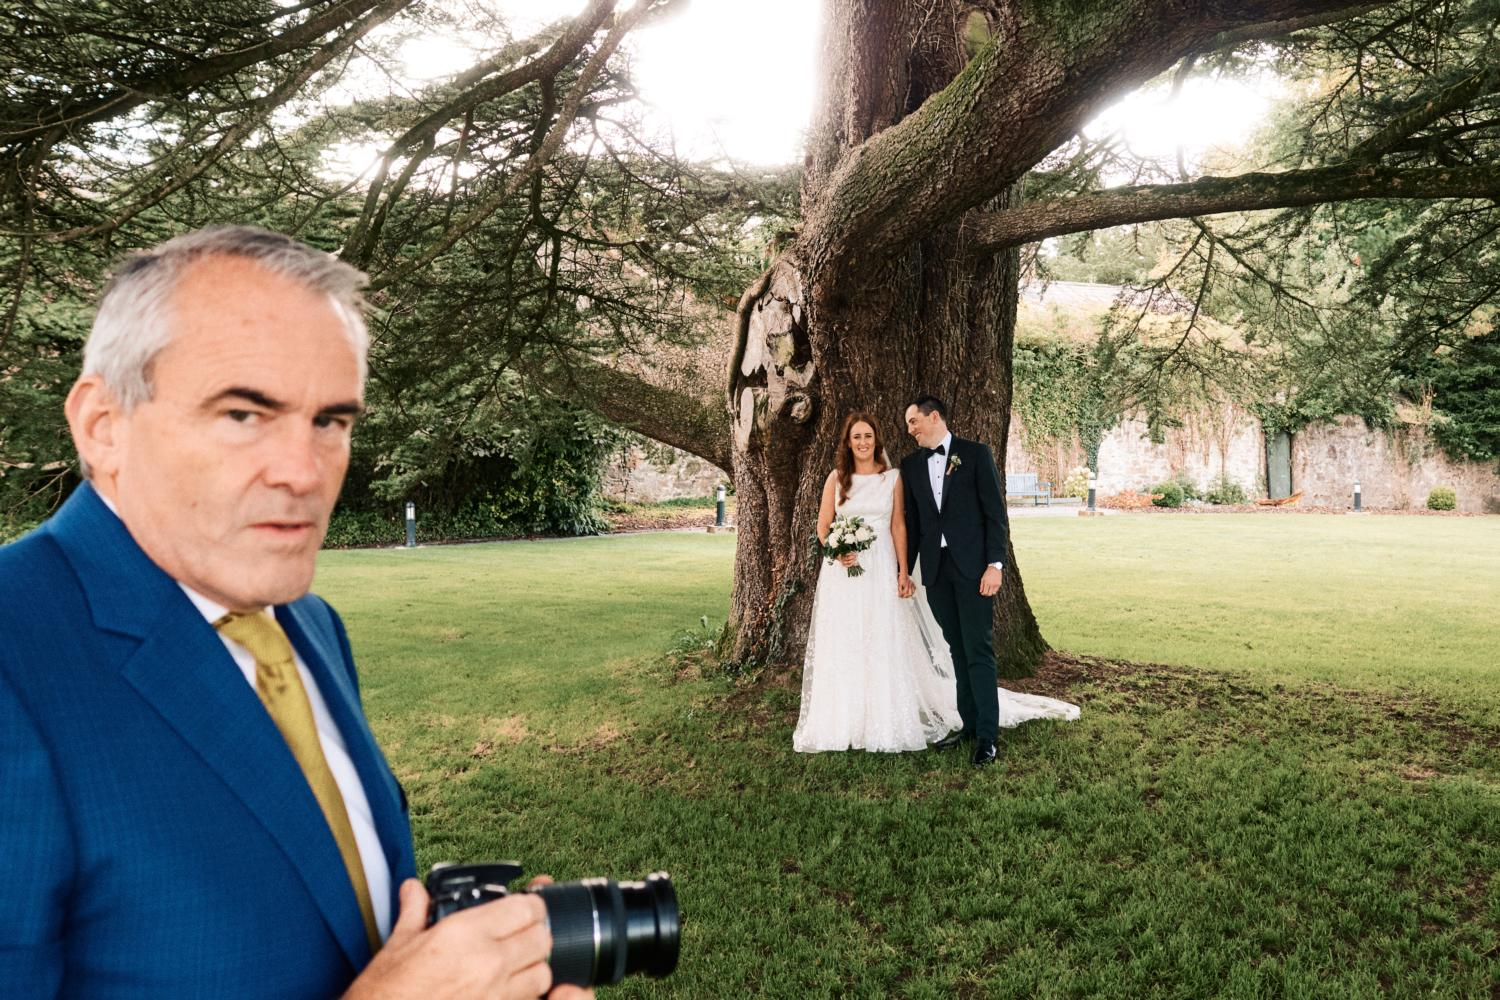 A wedding guests takes photographs of the bride and groom in front of a tree